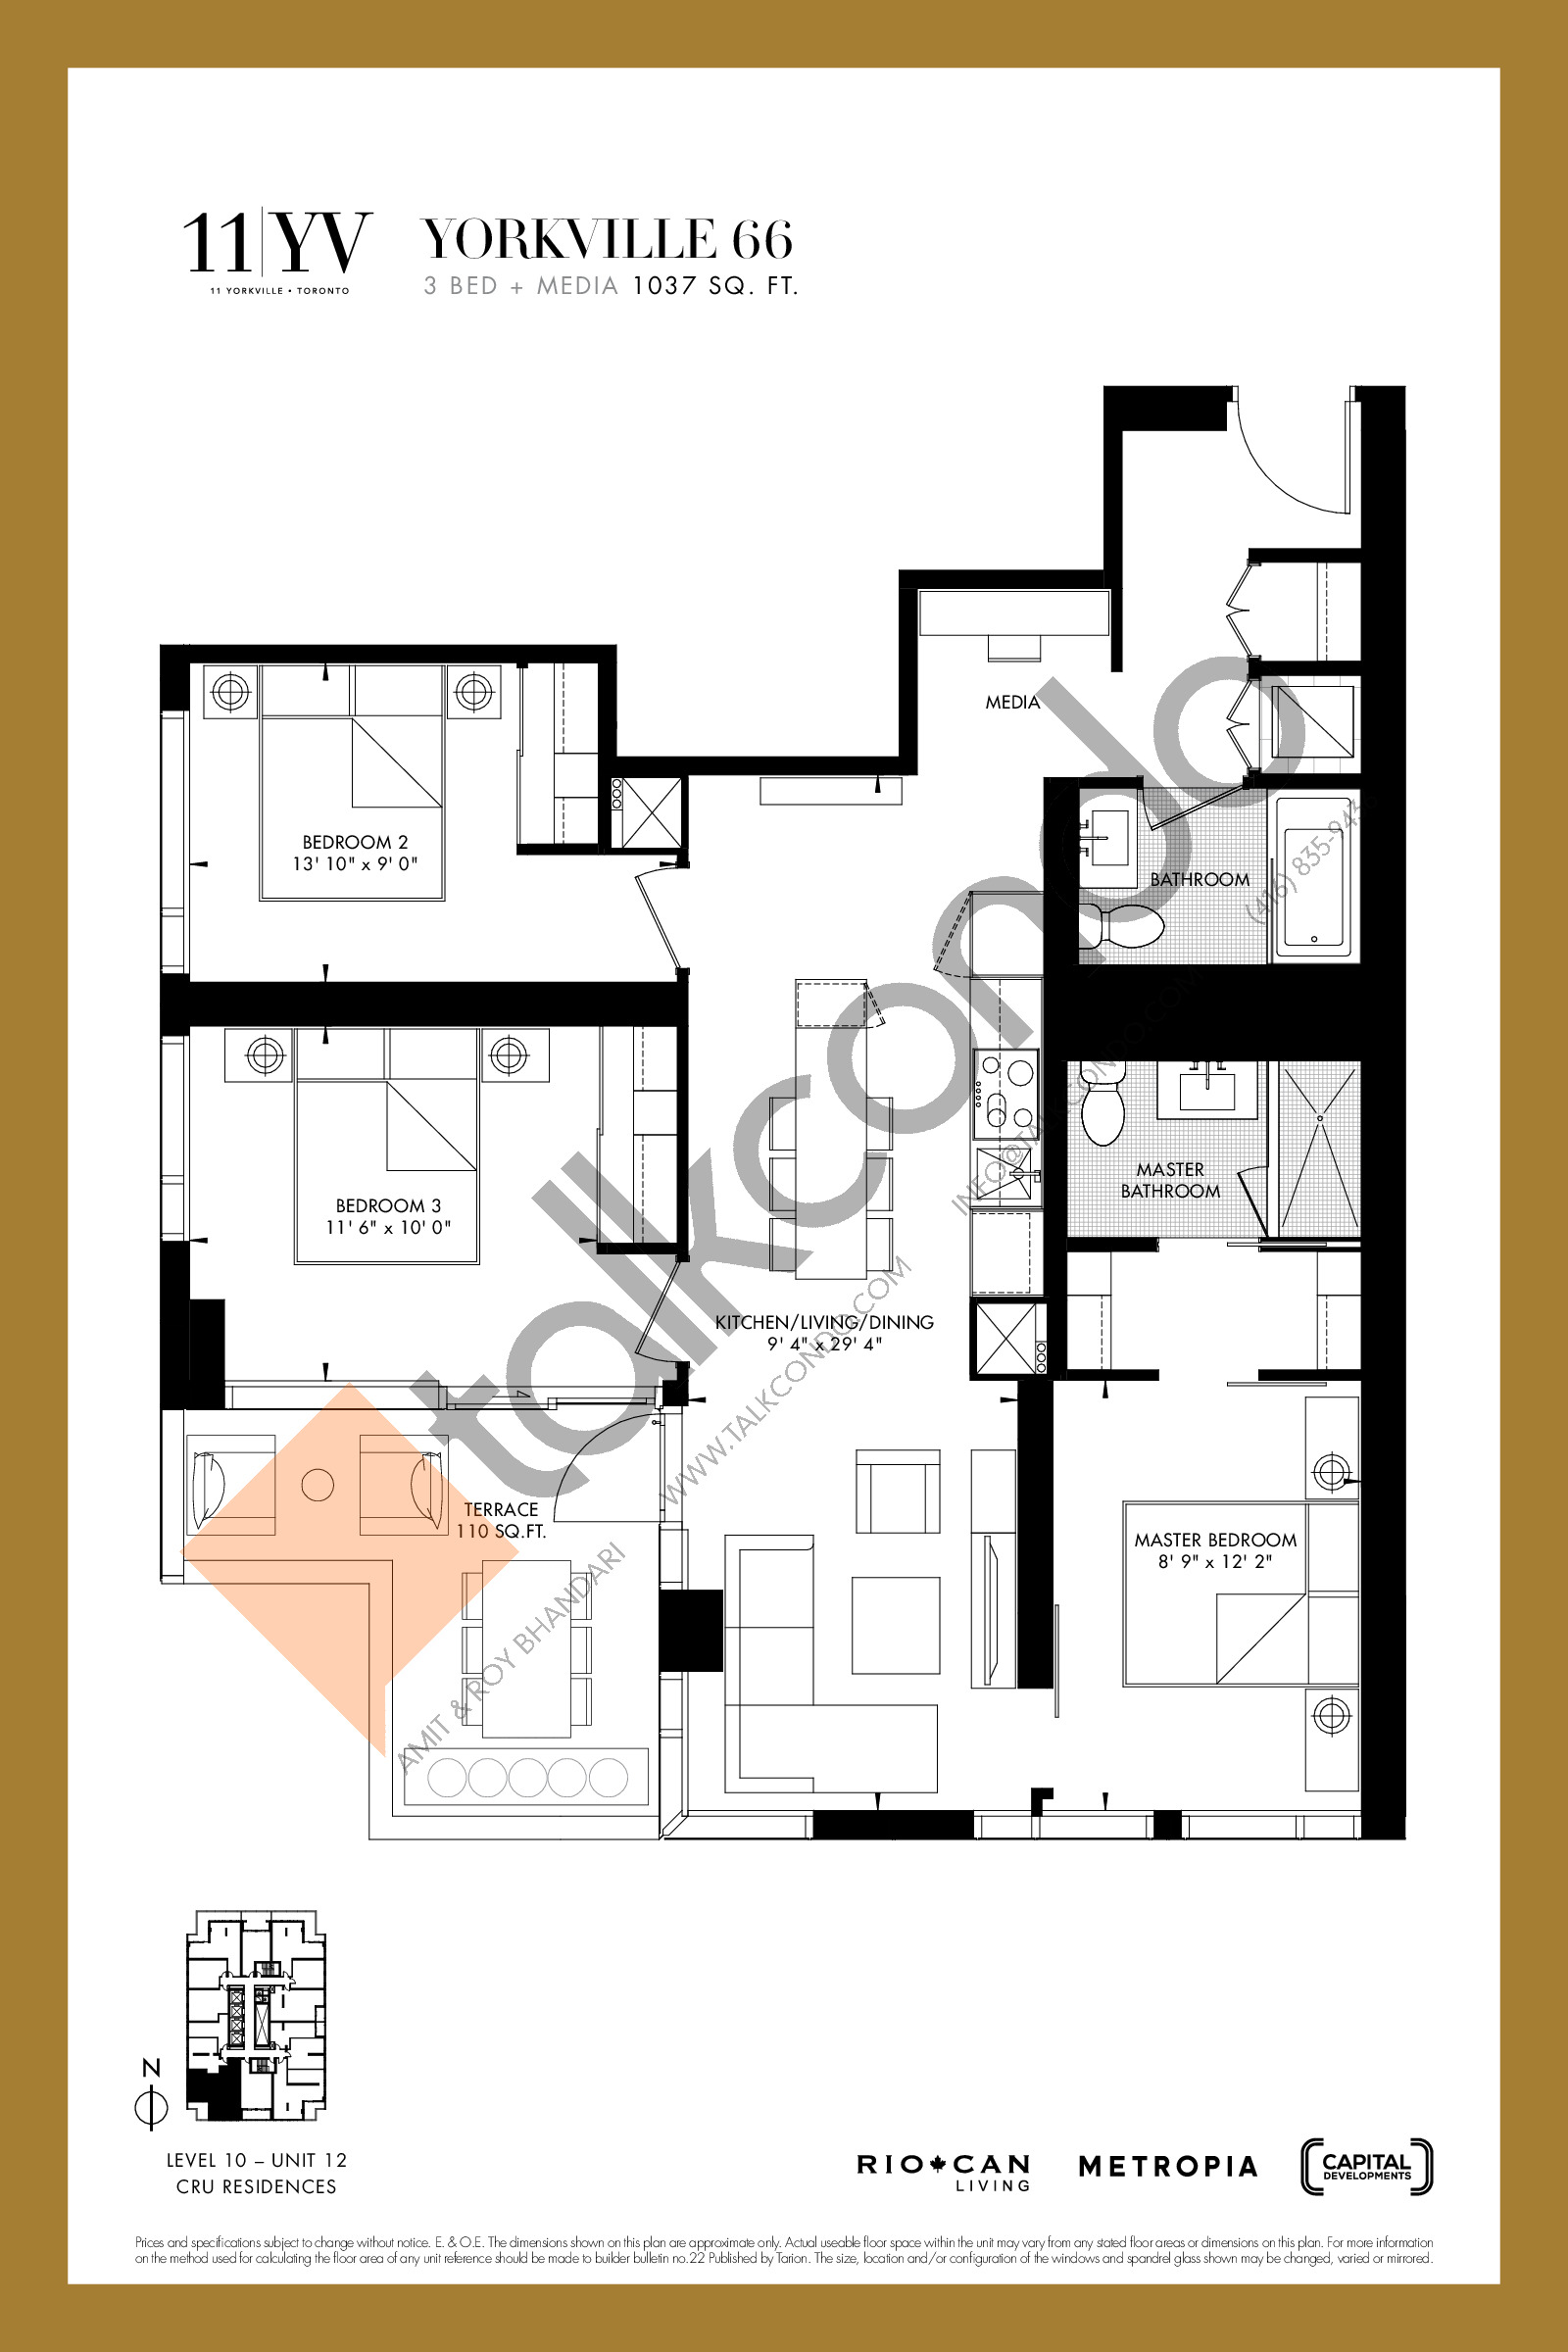 Yorkville 66 Floor Plan at 11YV Condos - 1037 sq.ft